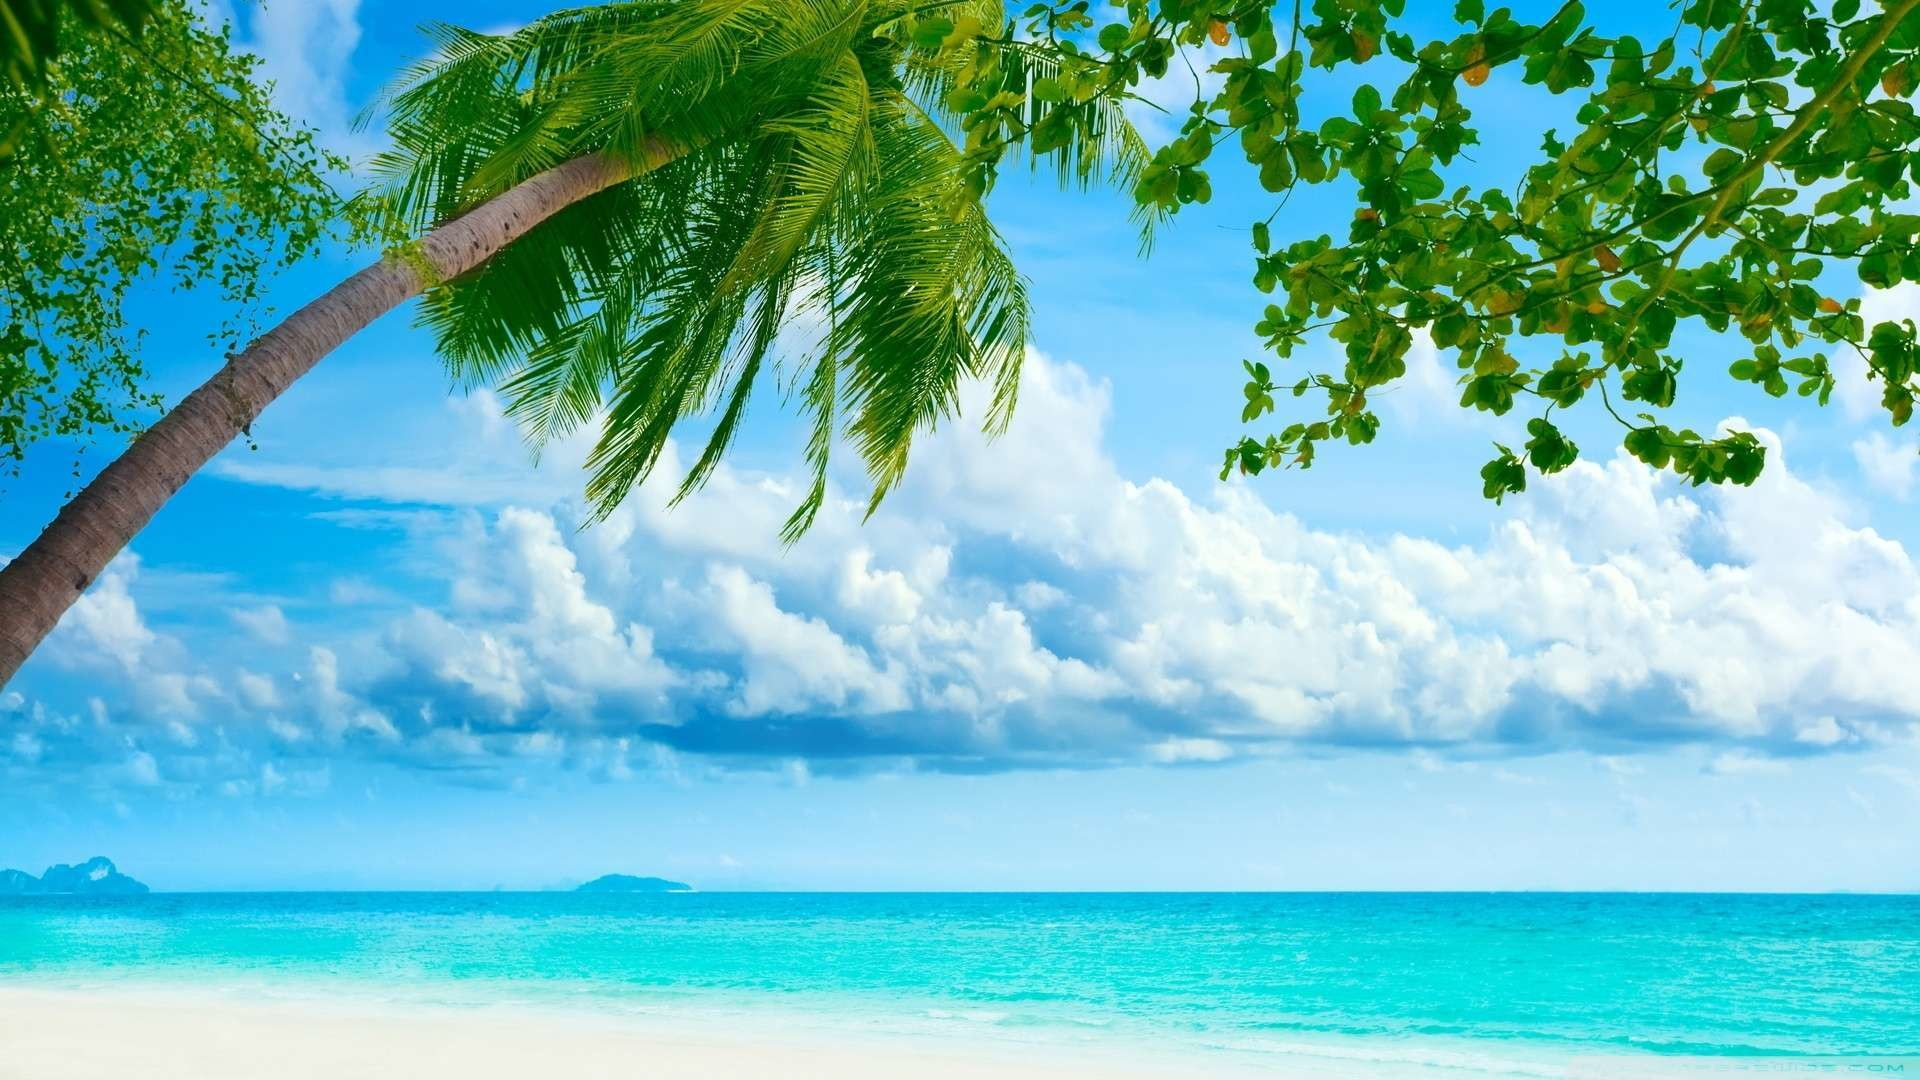 1920x1080 Wallpaper: Tropical Beach Resorts Wallpaper 1080p HD. Upload at .